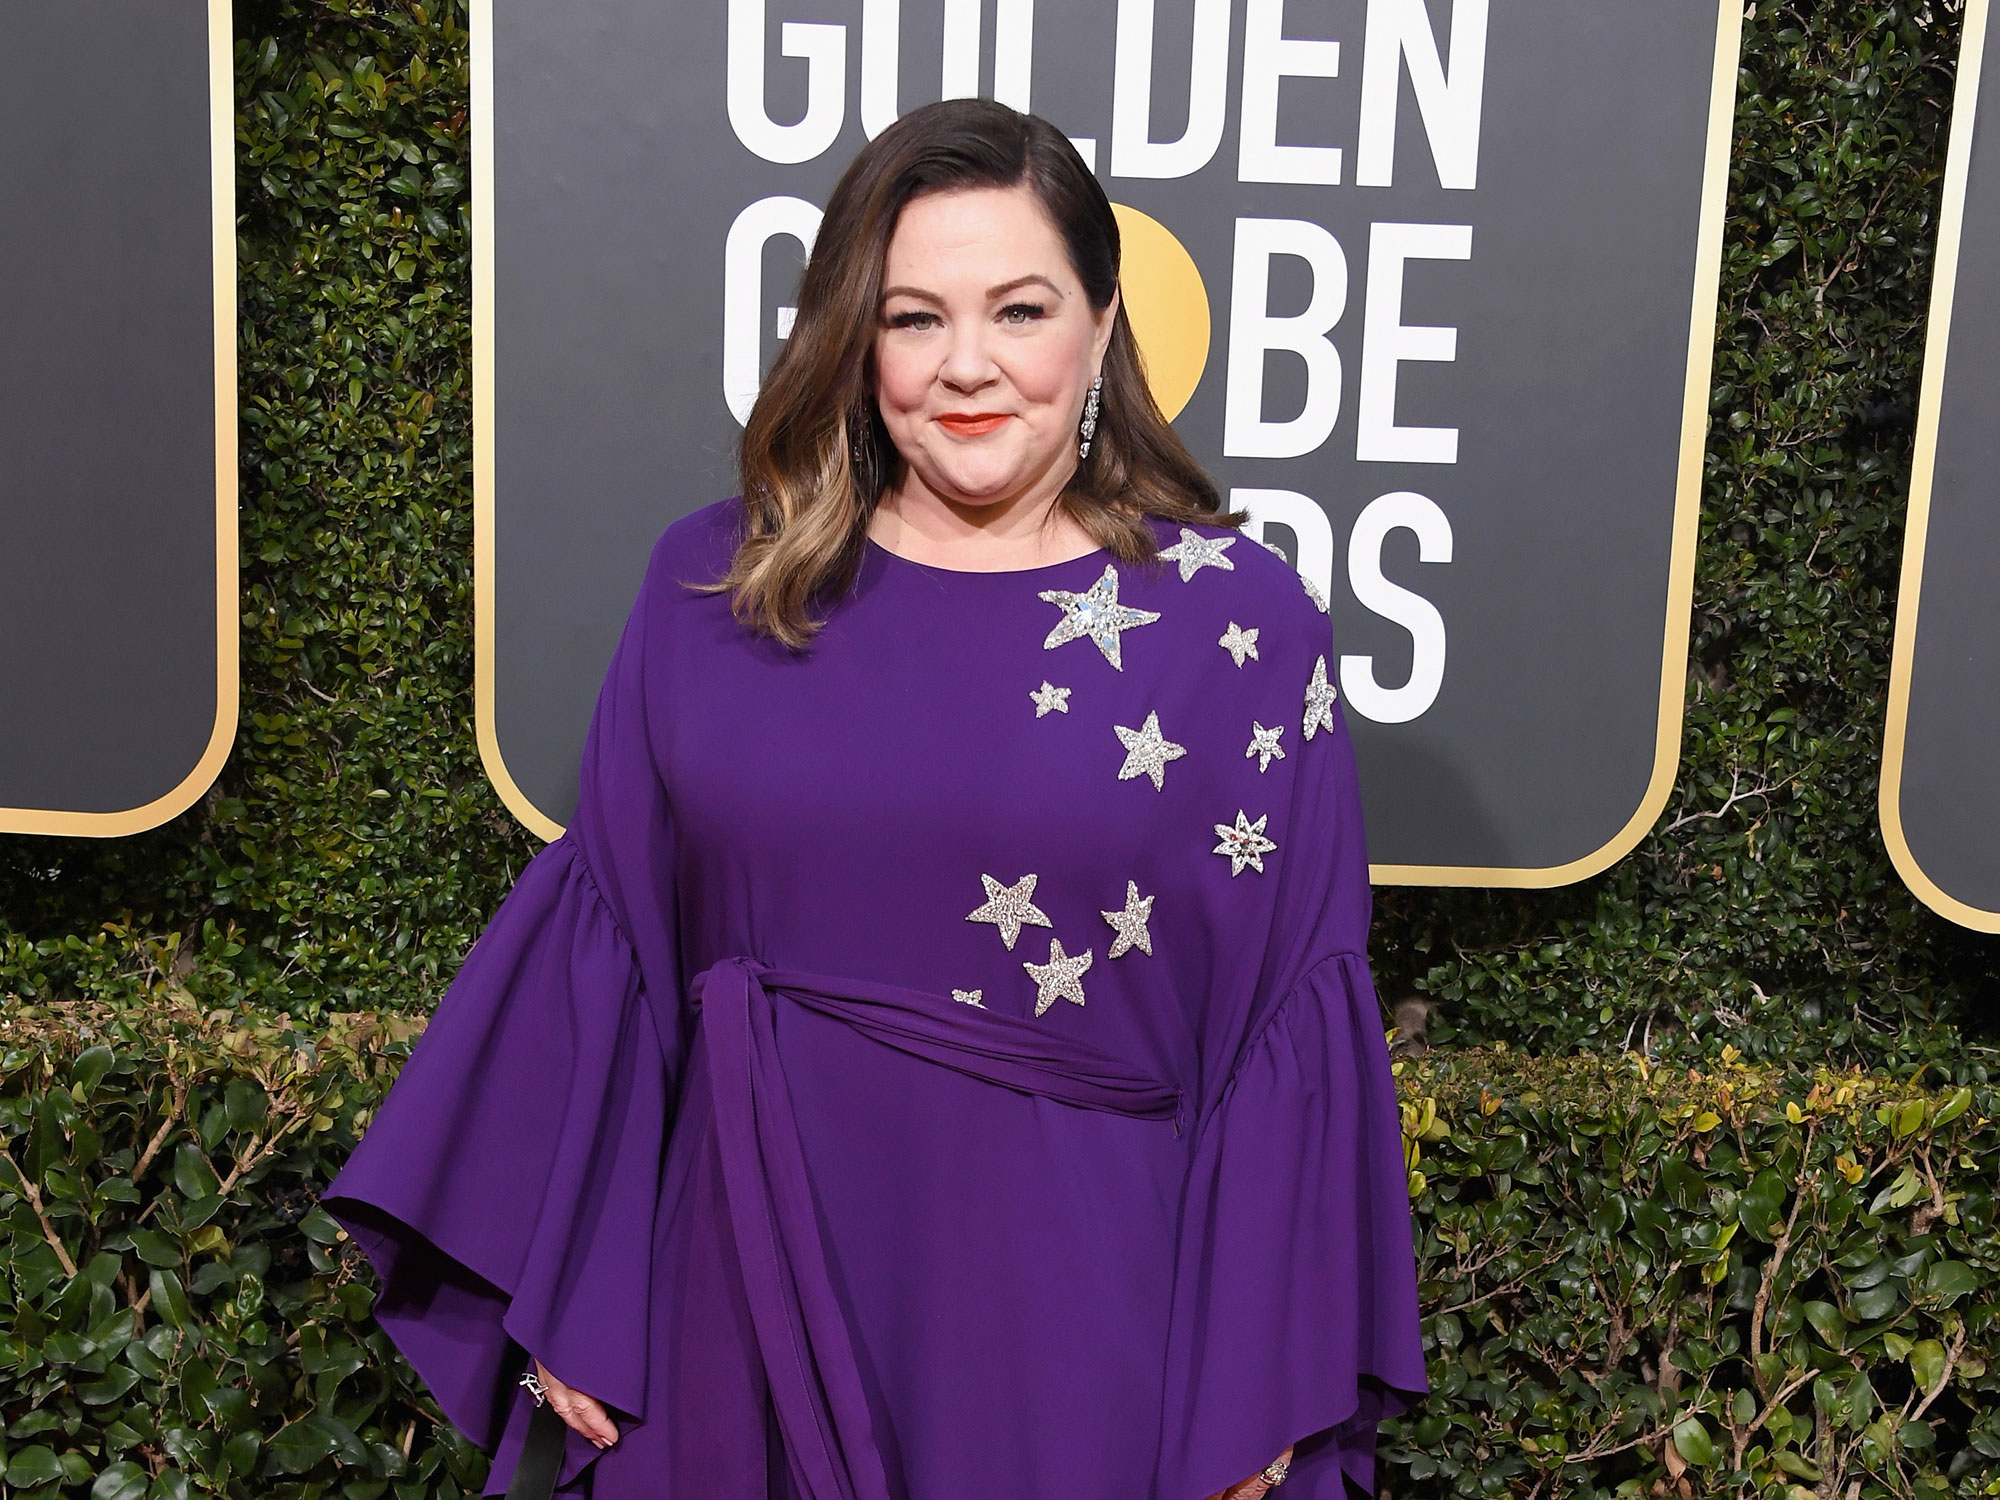 Melissa McCarthy Passed Out Ham Sandwiches at the Golden Globes